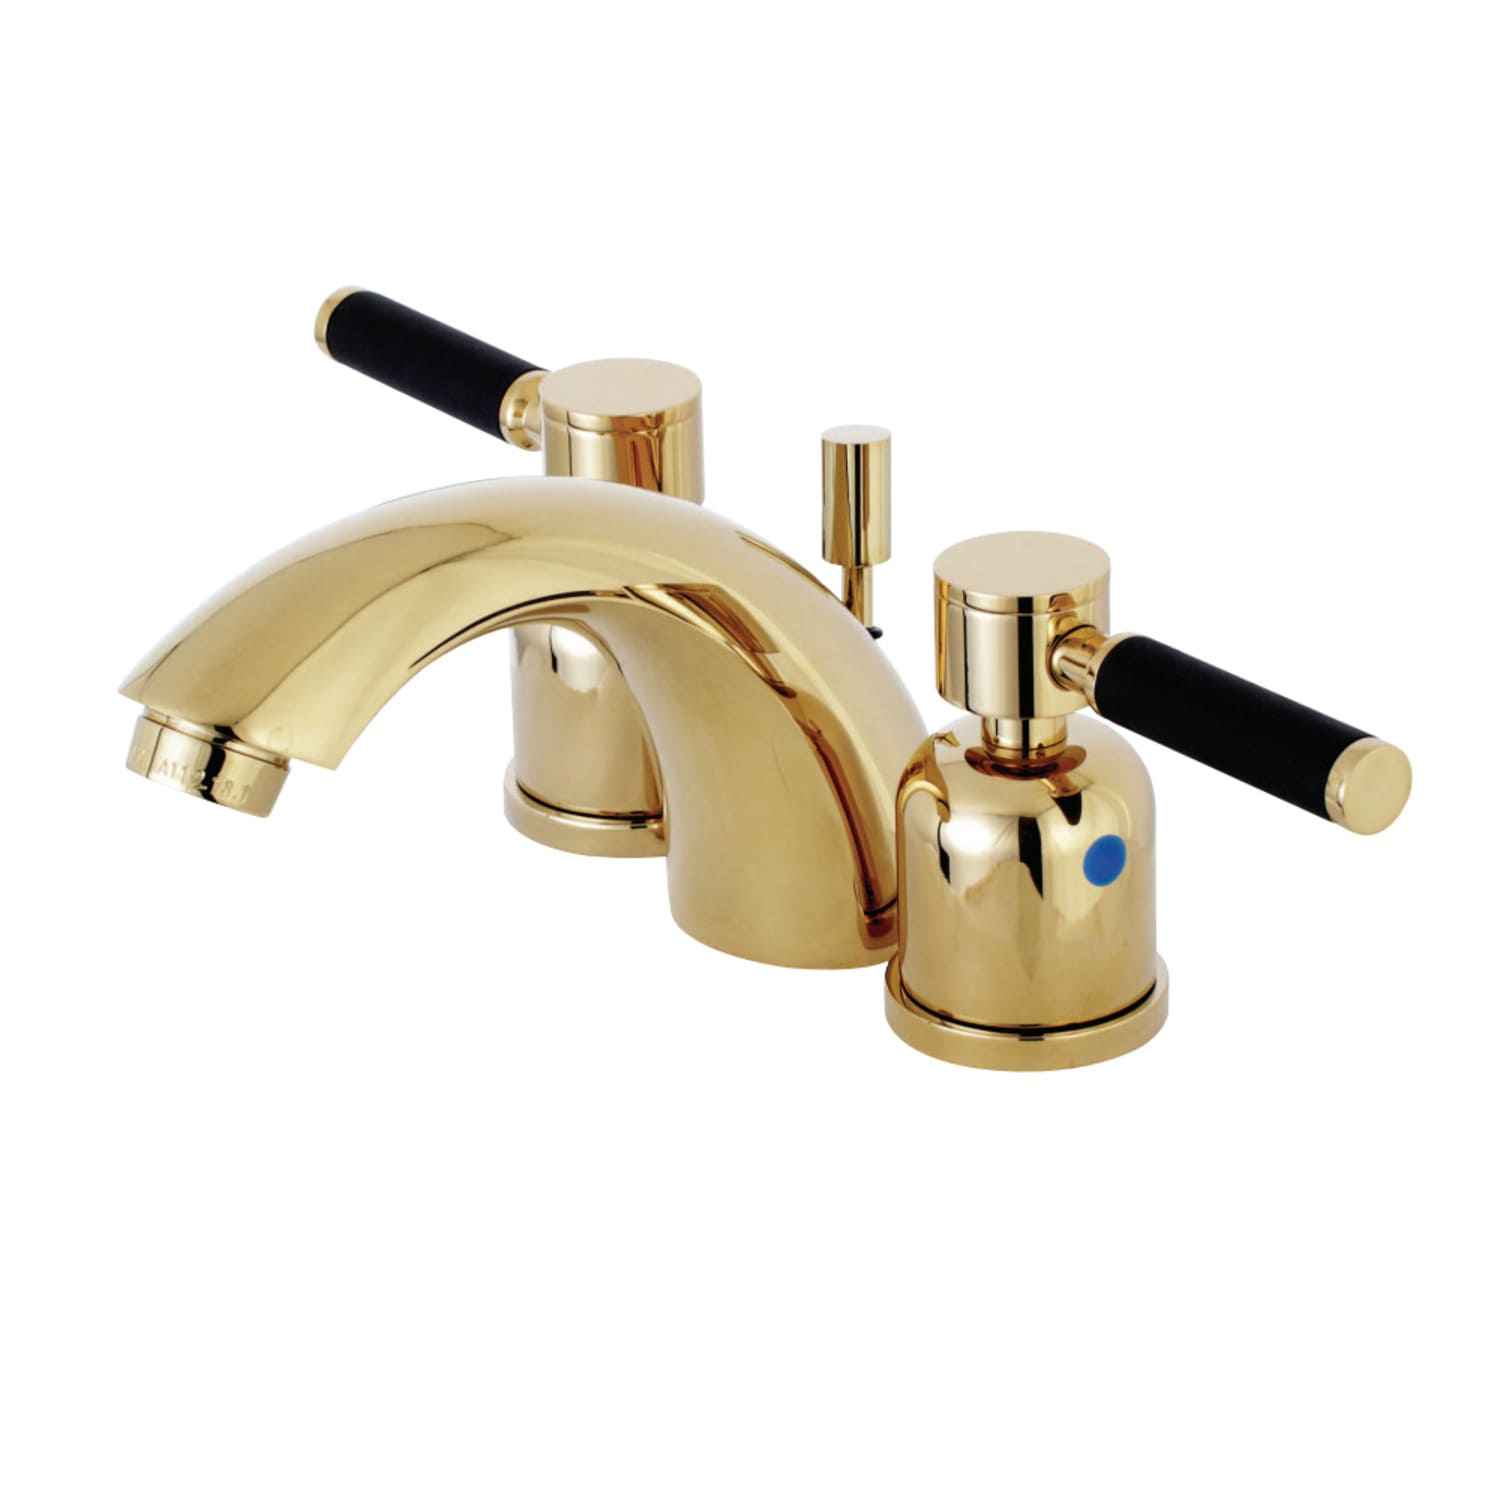 Kingston Brass Kb8952dkl Polished Brass Kaiser 1 2 Gpm Widespread Bathroom Faucet With Rubber Coated Lever Handles Includes Pop Up Drain Assembly Faucet Com